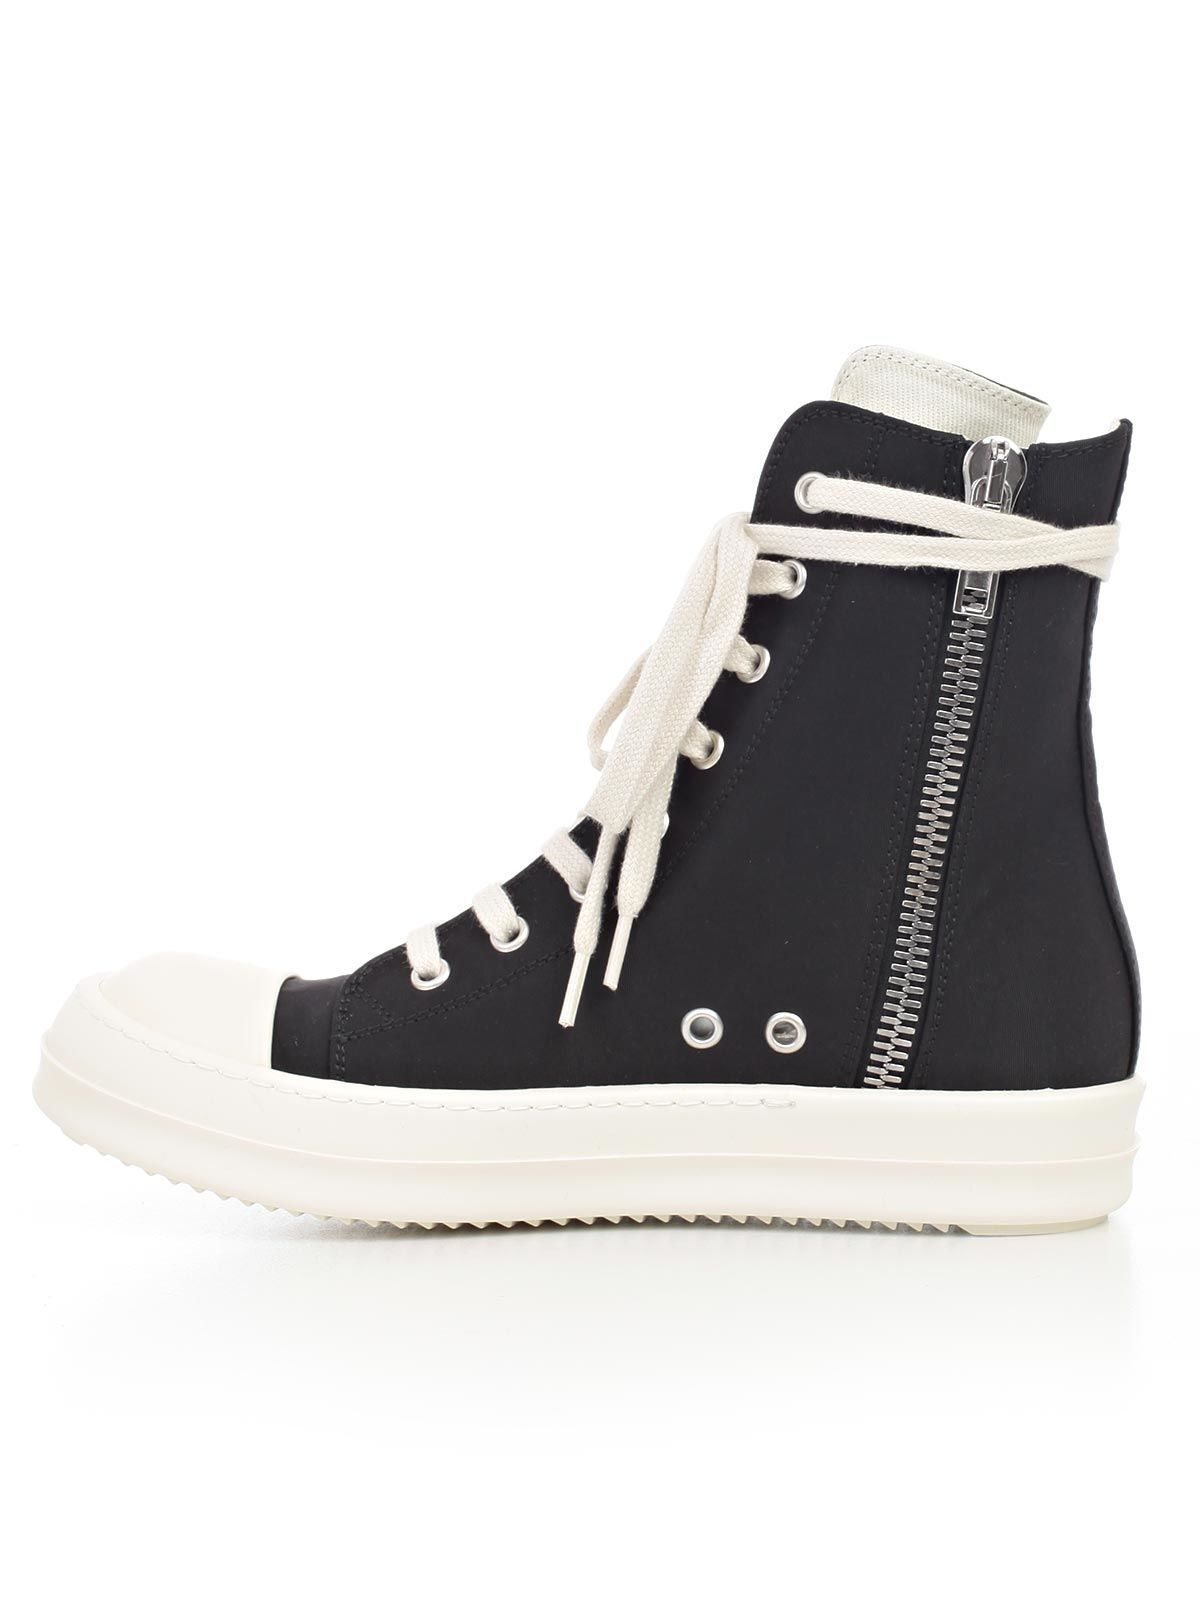 shop rick owens shoes